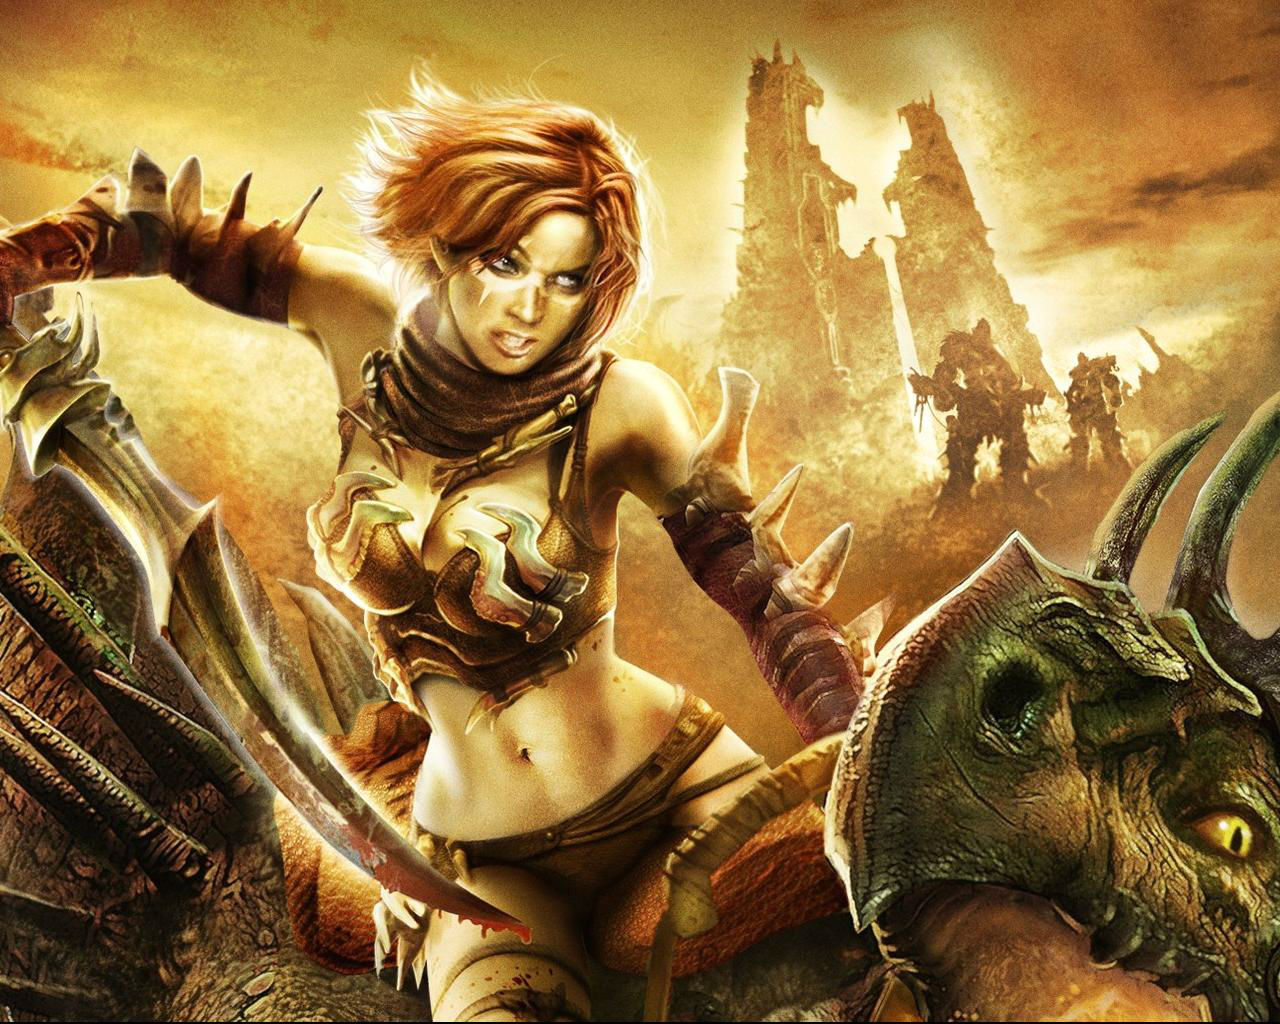 Nude heavenly sword pic adult image